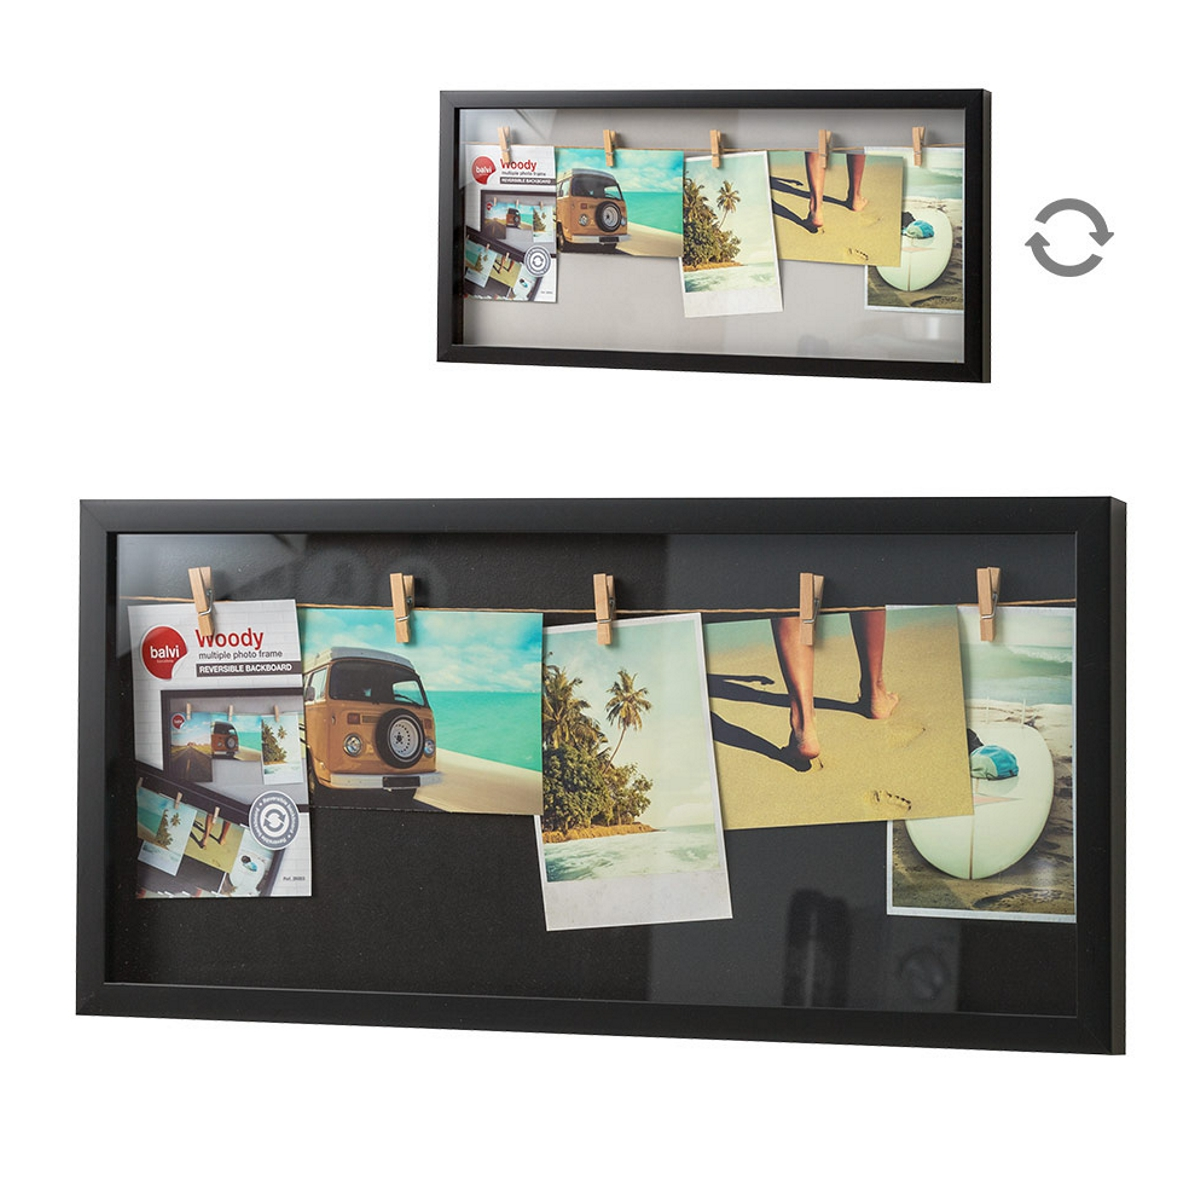 Balvi Woody Multiple 5 Photo Frame Black 26.8 x 56.8 x 3 cm